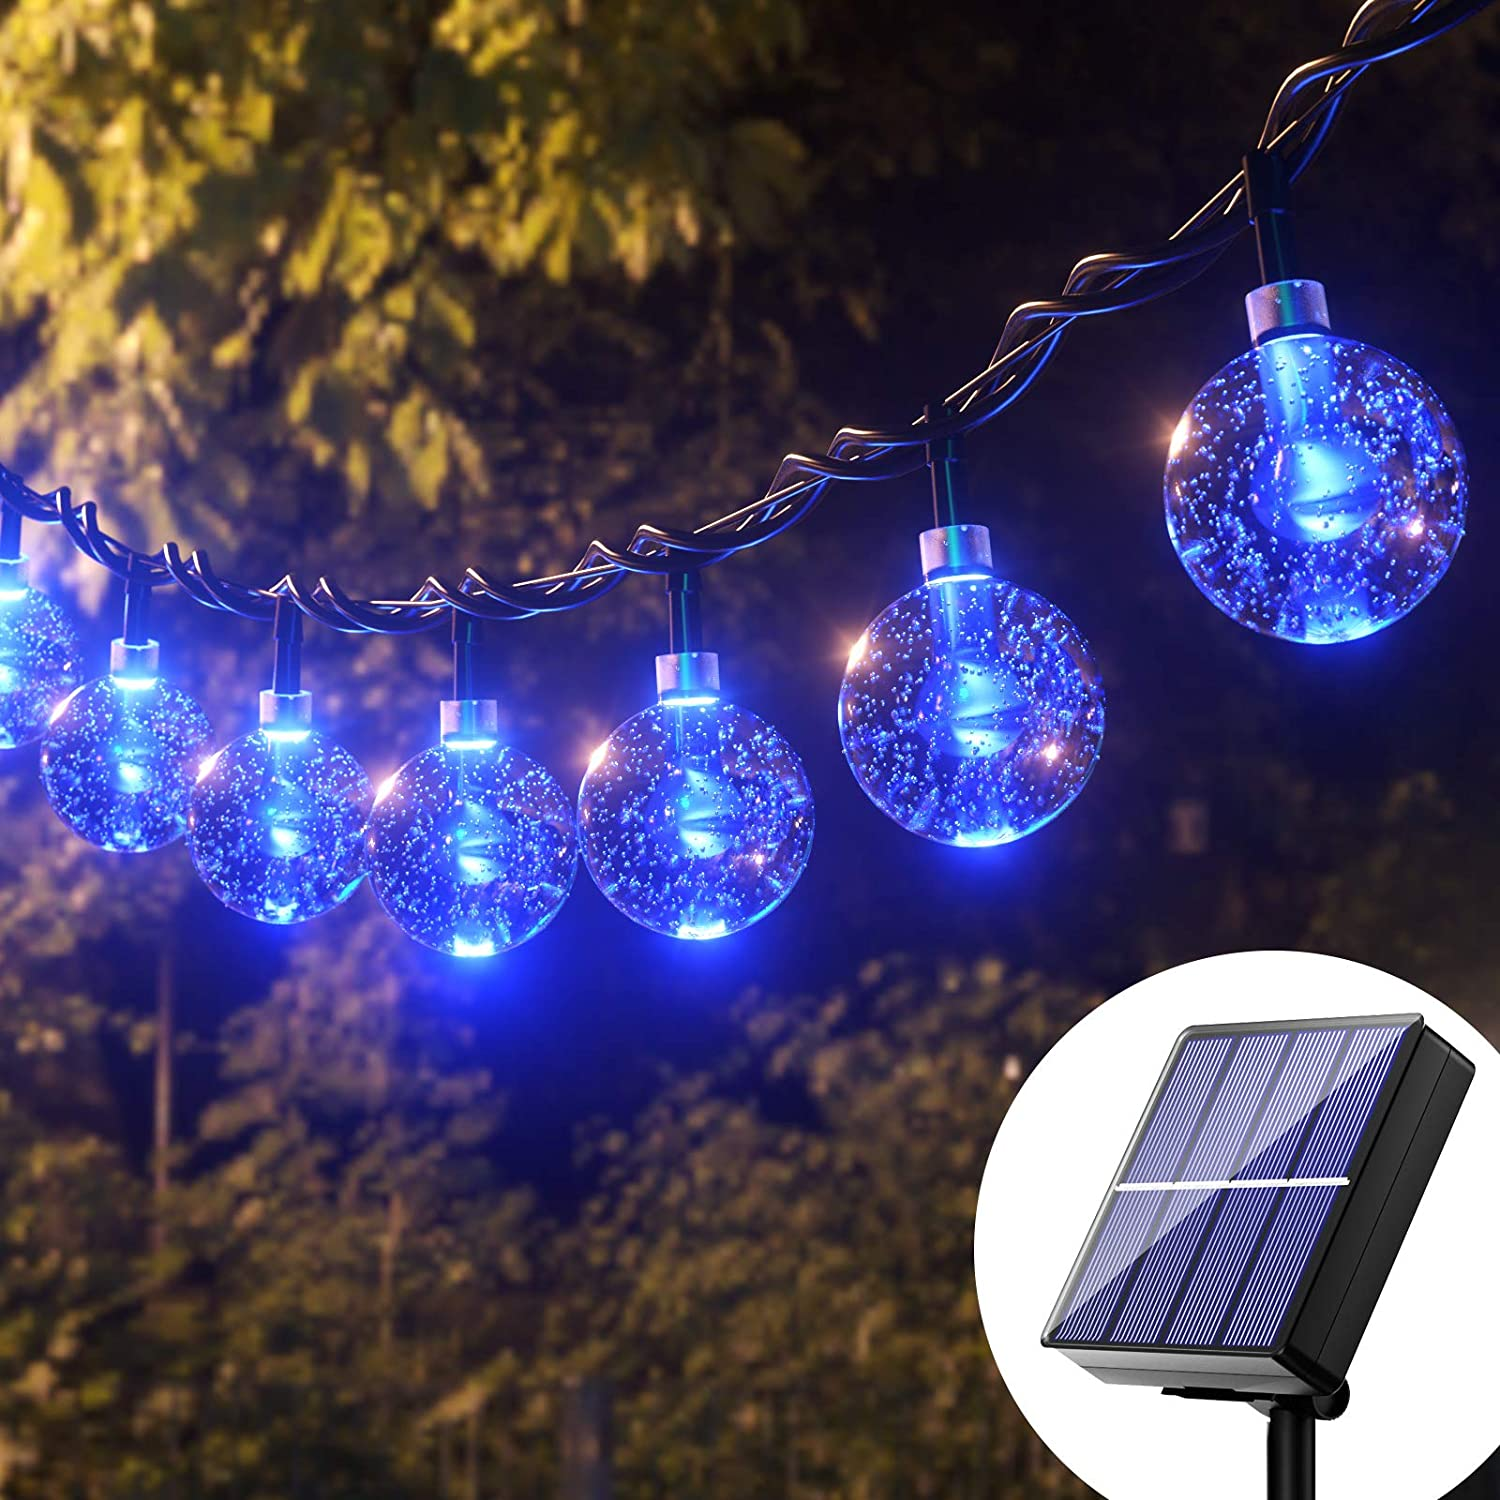 Solar String Lights Blue Outdoor - 36FT 60 Led Upgraded Outdoor Globe String Lights, Solar Powered Crystal Balls Lights, 8 Mode Waterproof Patio Lights Solar for Garden patio Gazebo Yard Party Decor